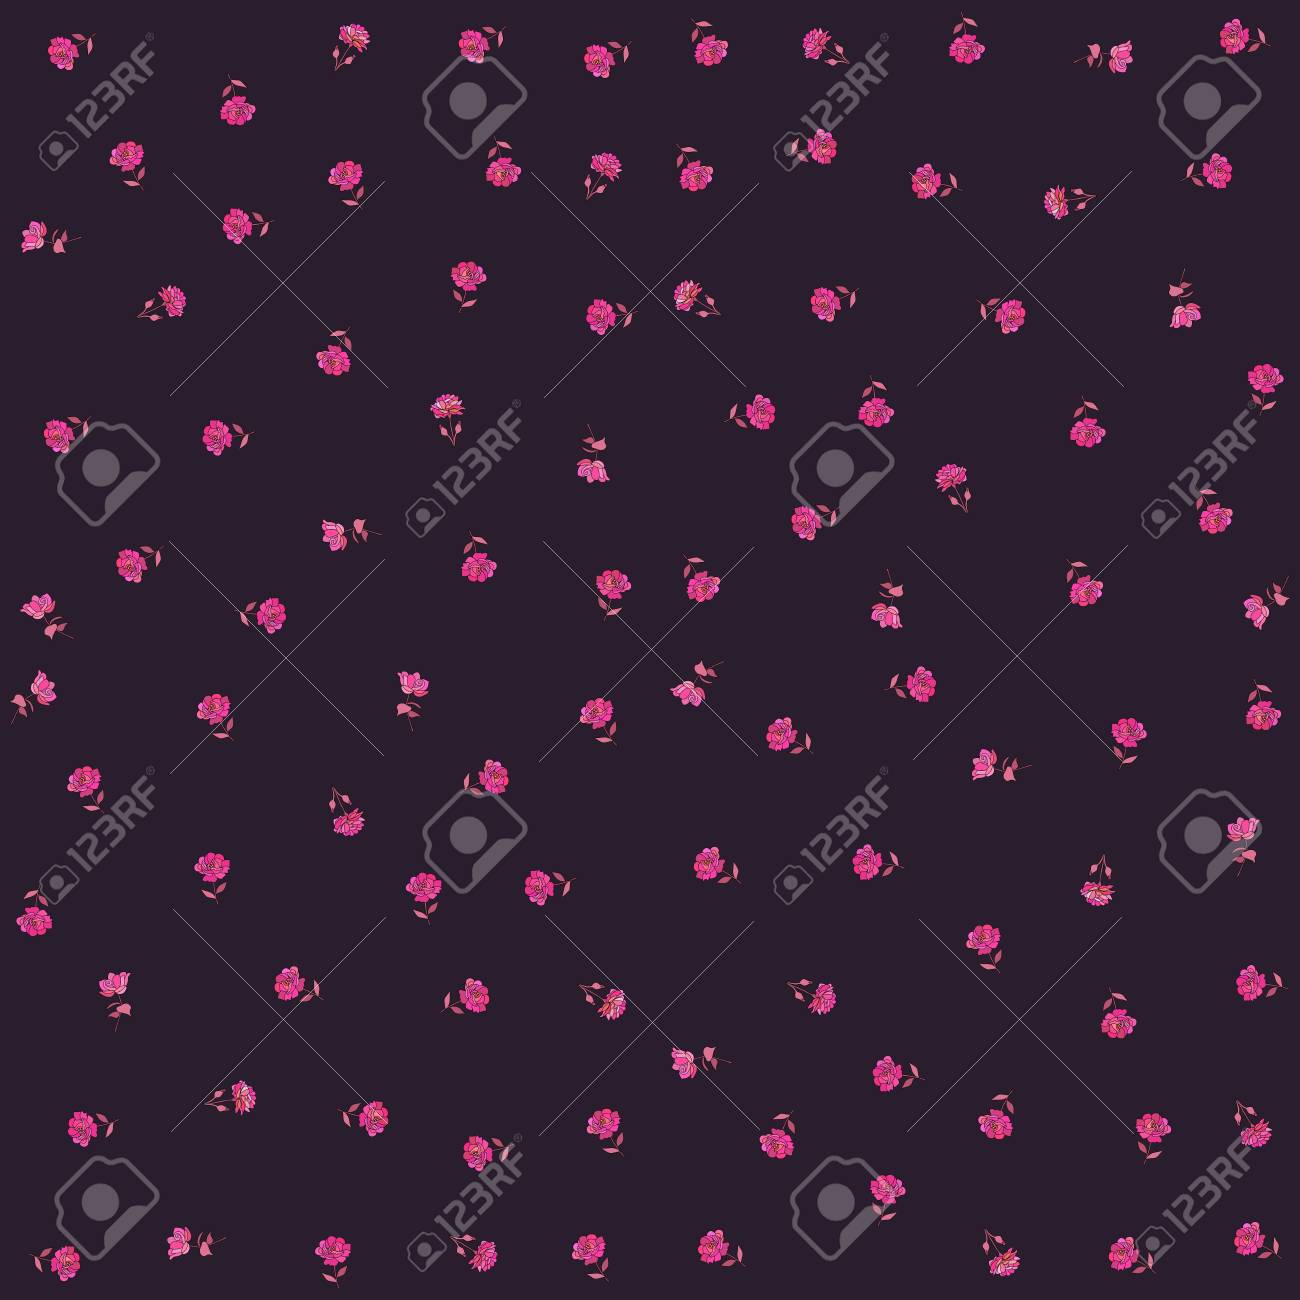 Little Crimson Rose Flowers Isolated On Black Background Print Stock Photo Picture And Royalty Free Image Image 114146946